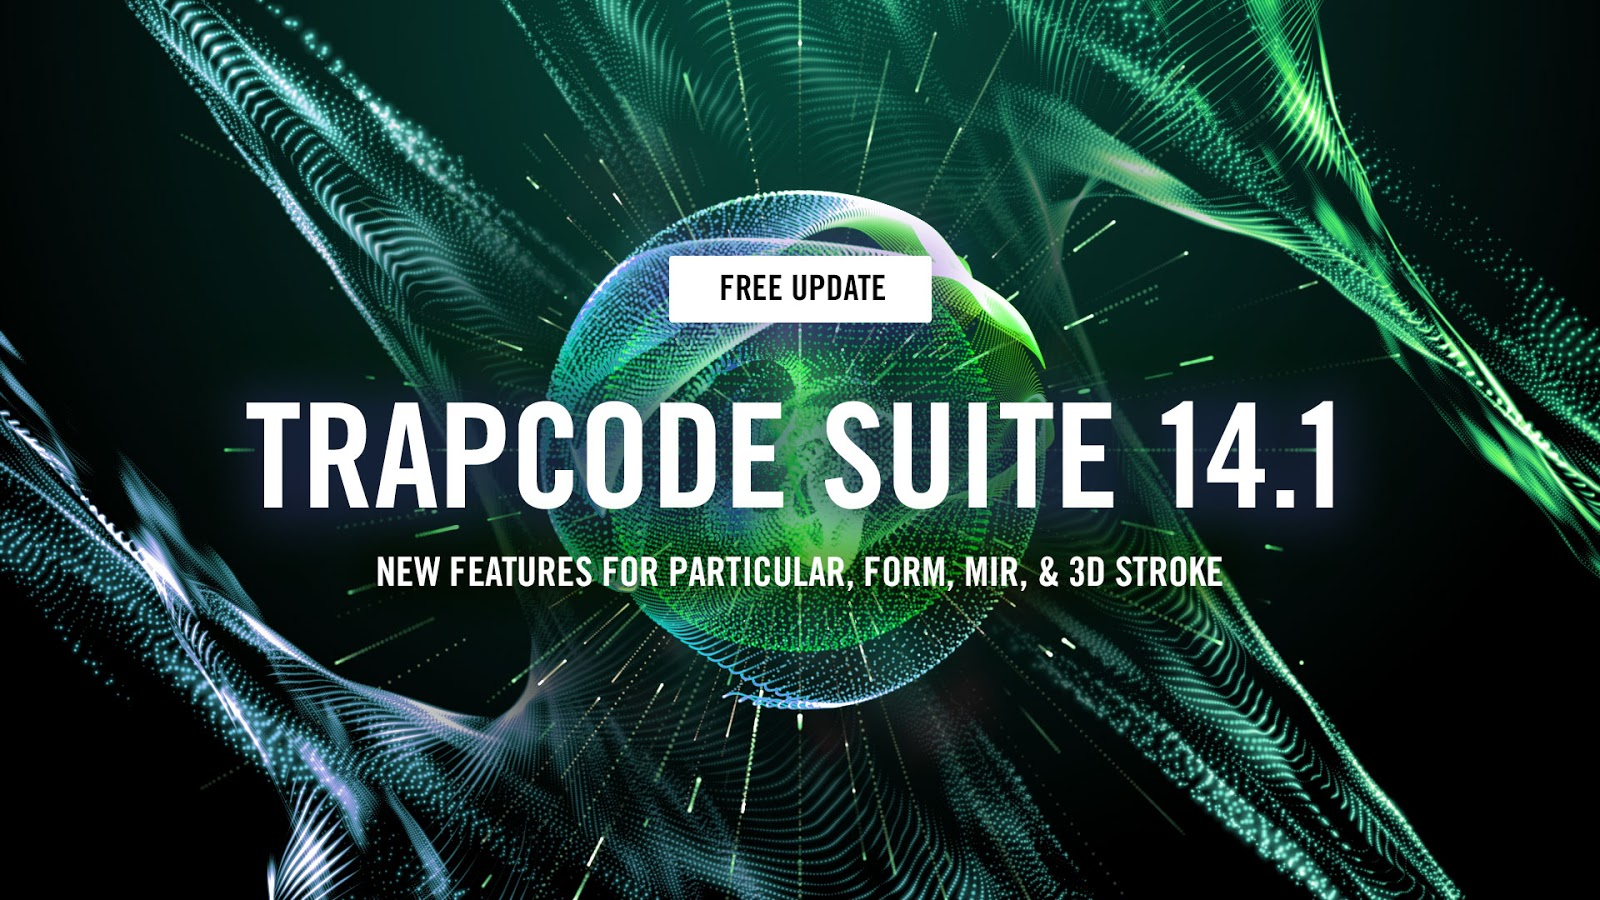 Red Giant Trapcode Suite 15 1 3 (Win-Mac) + keys (FULL): Red Giant